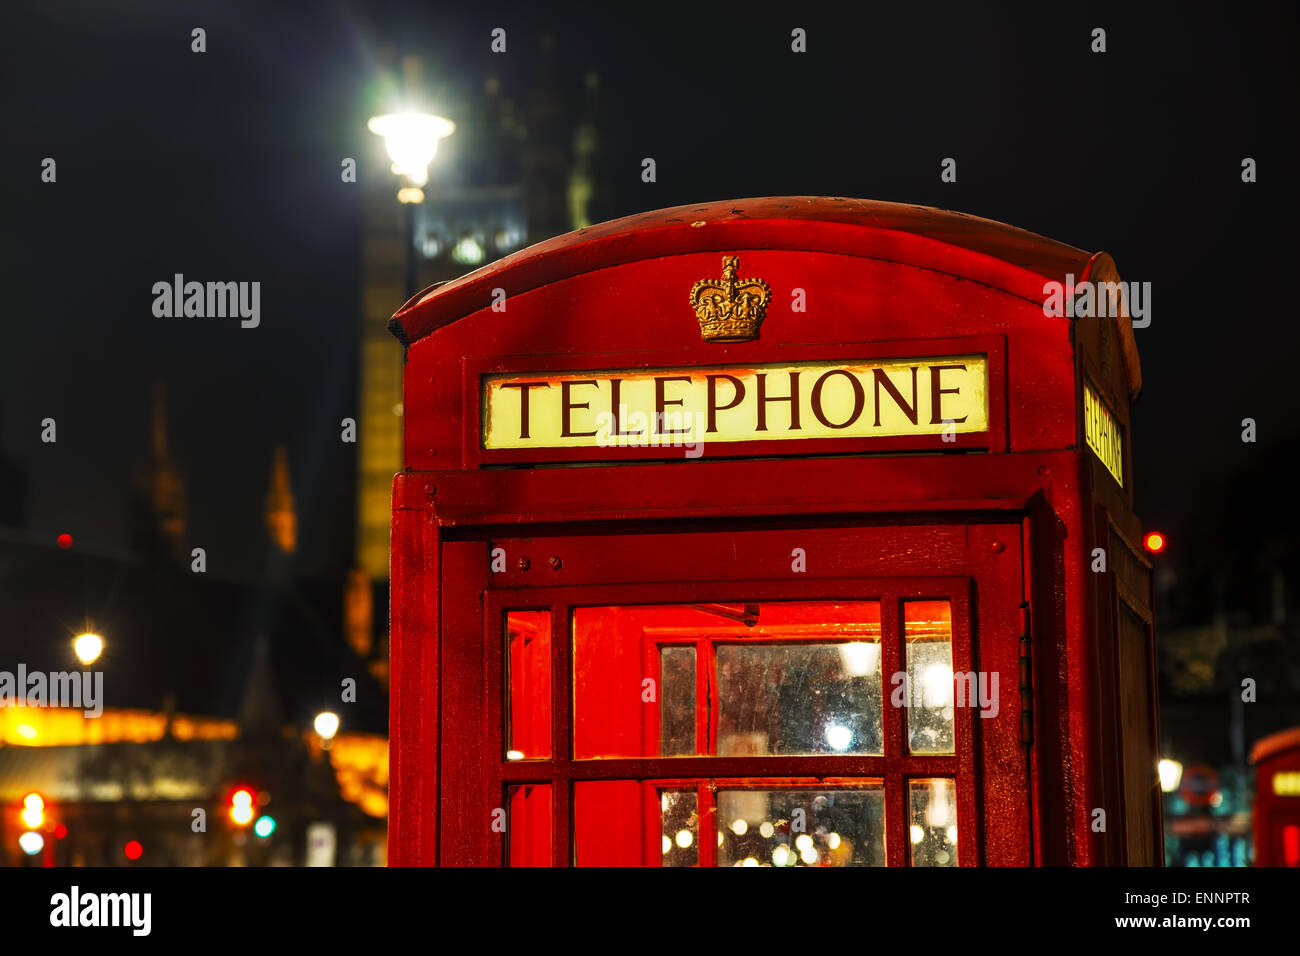 Famous red telephone booth in London, UK at night - Stock Image